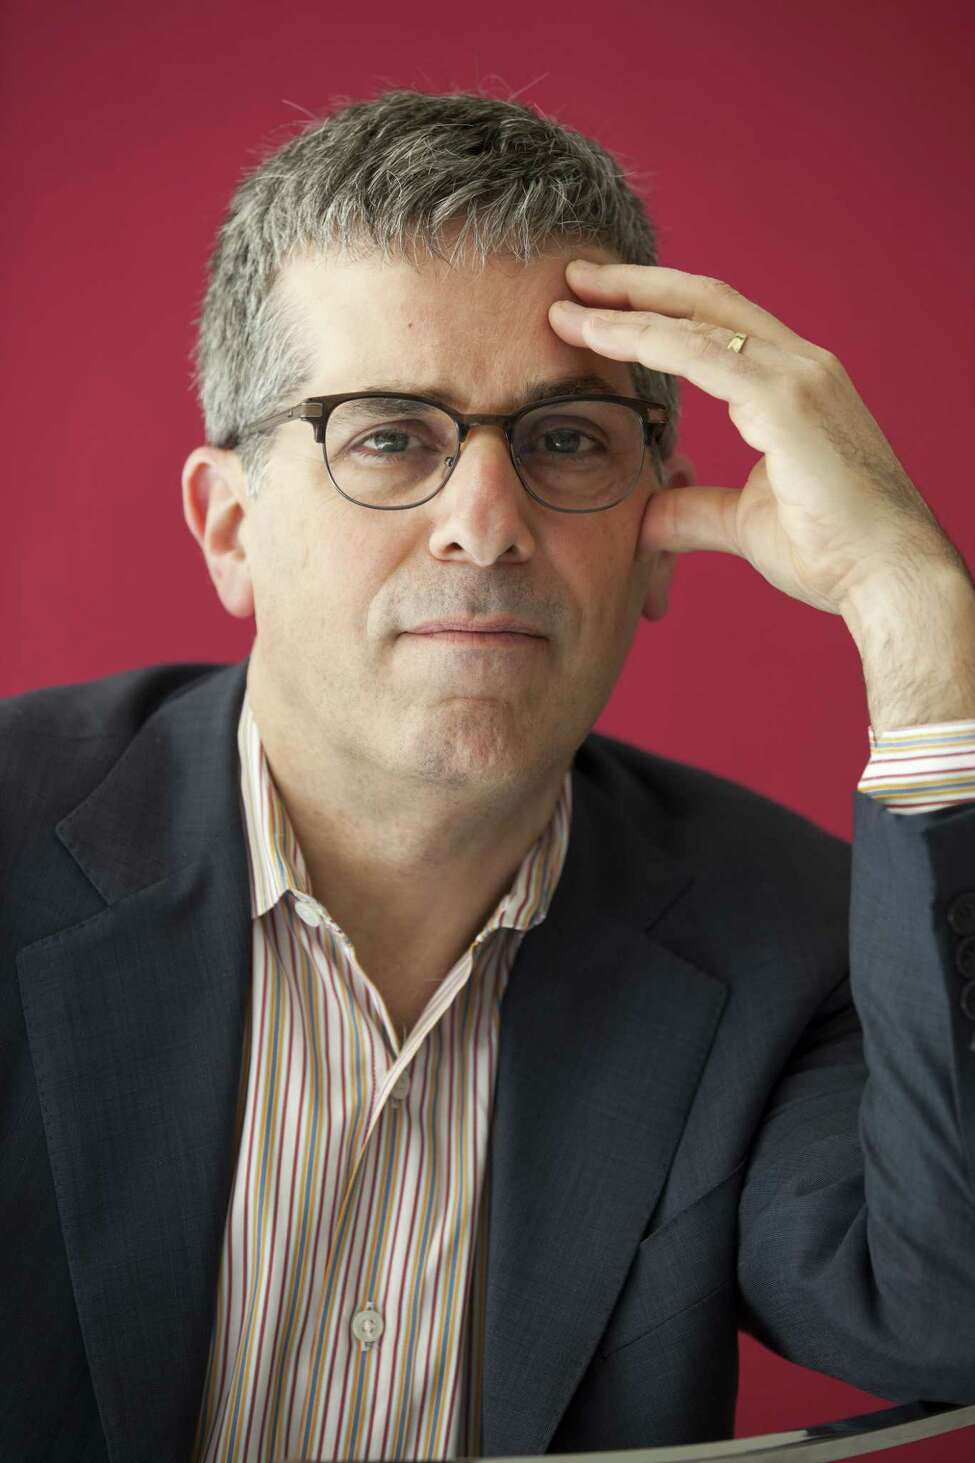 Jonathan Lethem, American writer, Milano, Italy, 20th May 2017. (Photo by Leonardo Cendamo/Getty Images)